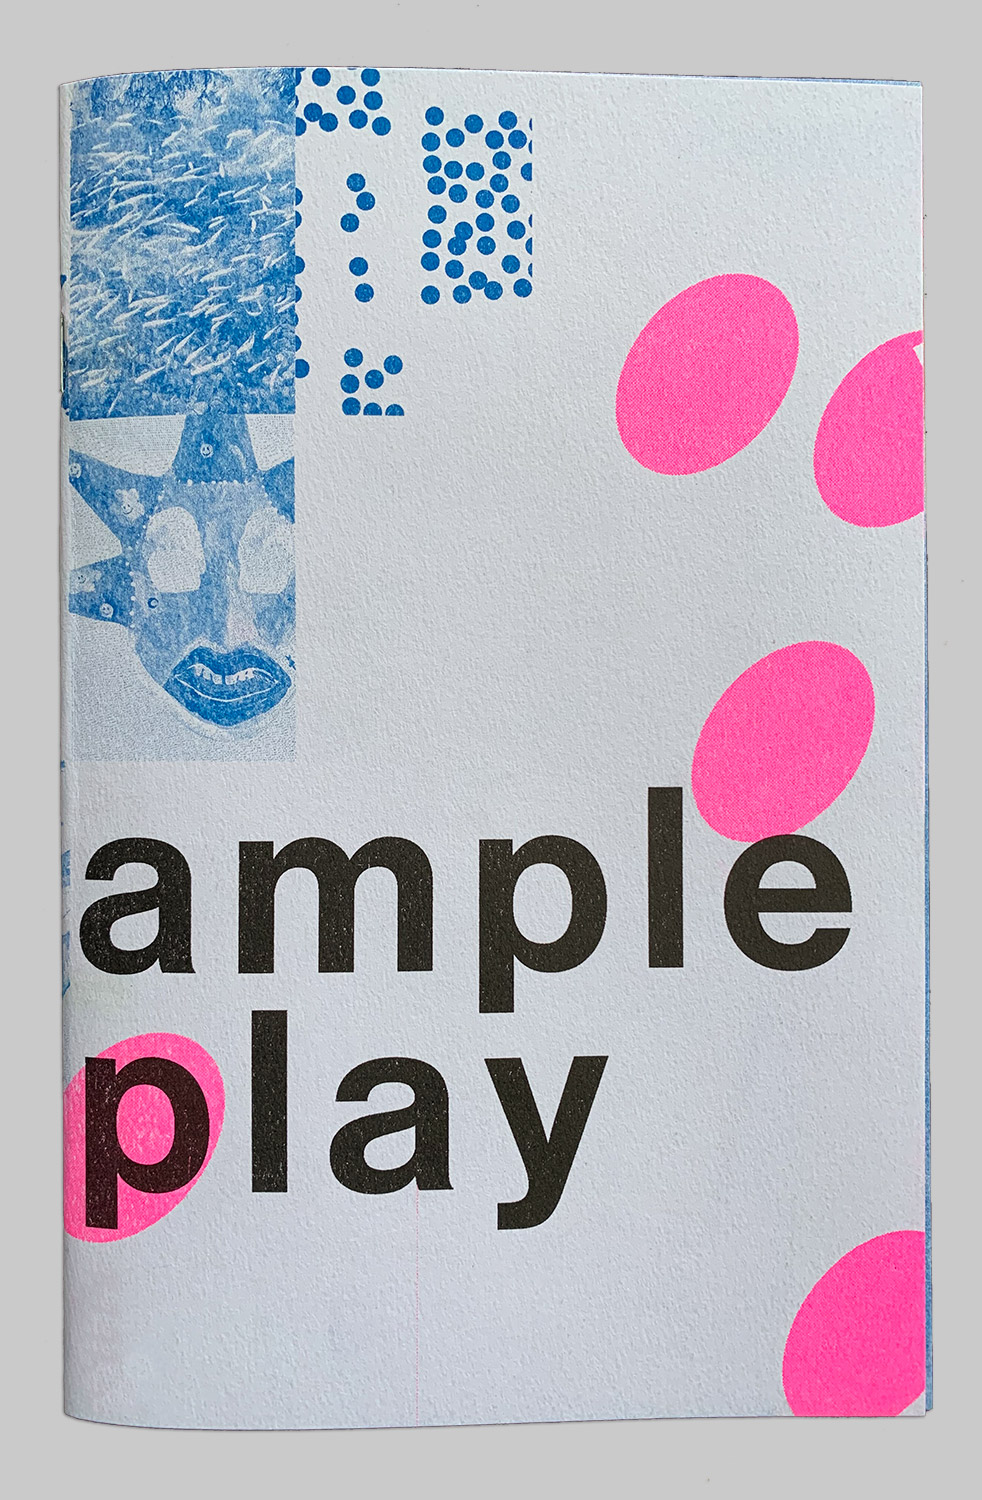 s/ample play